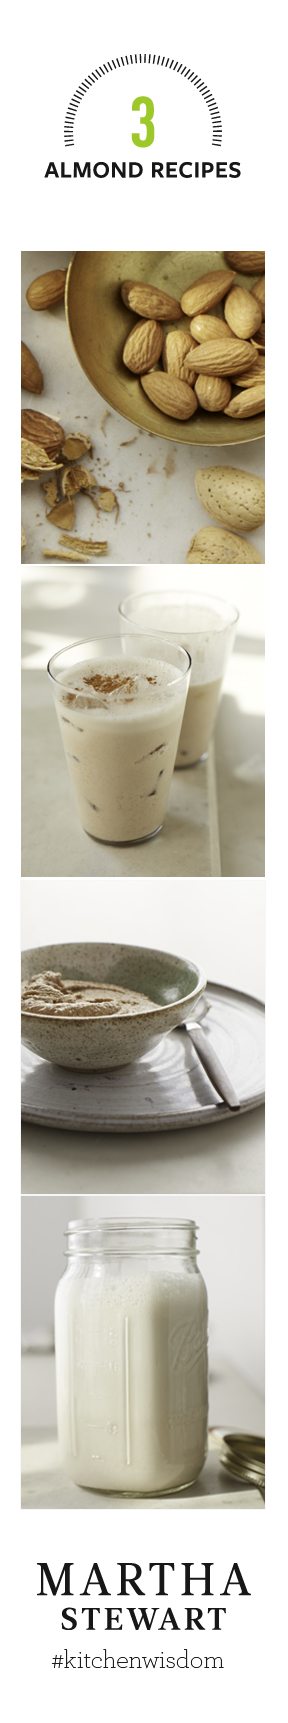 How to Make Homemade Almond Butter, Almond Milk and Almond Cinnamon Frappé